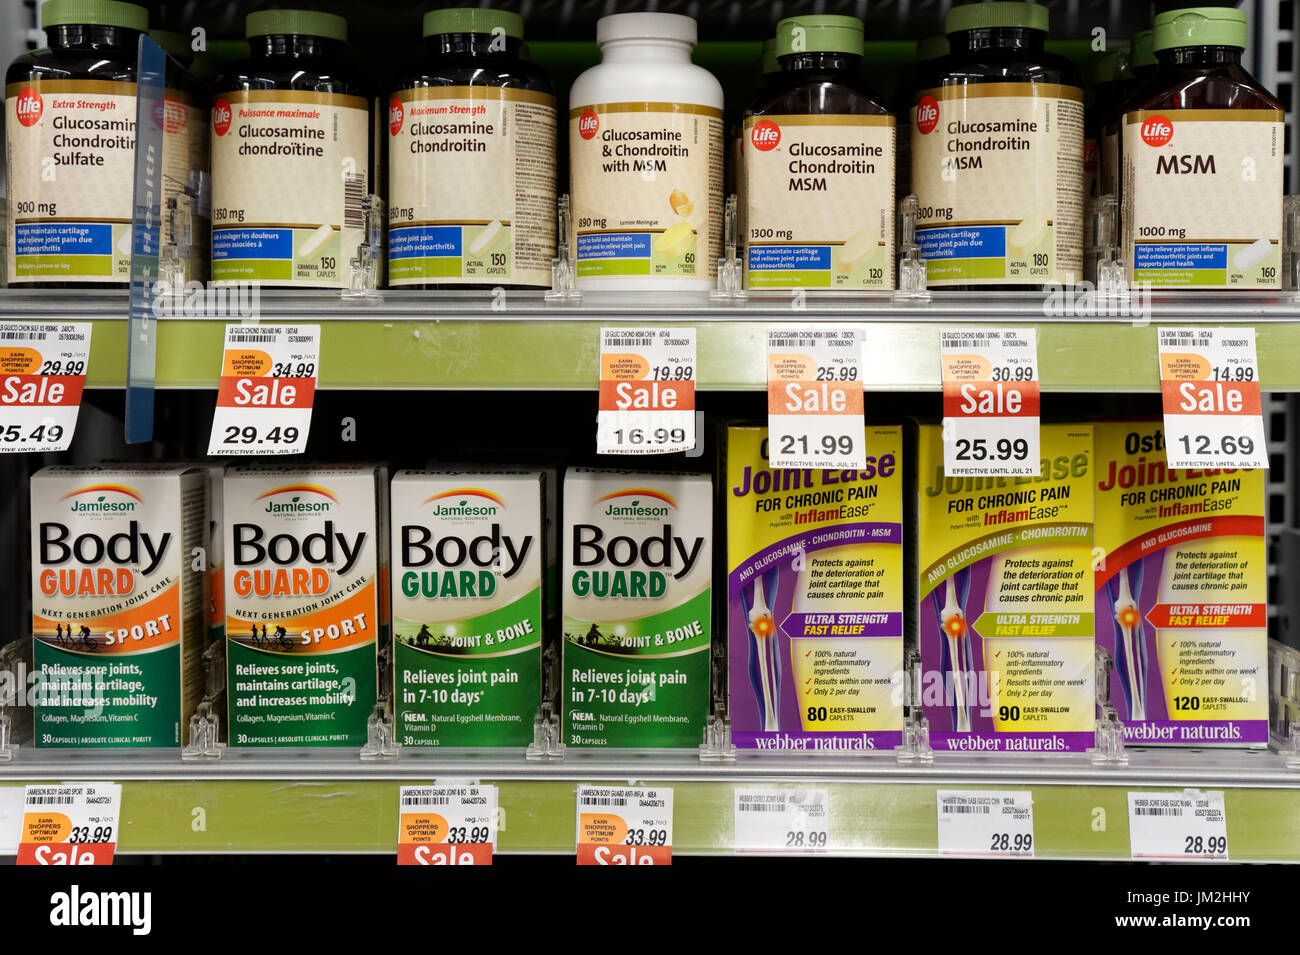 Joint pain remedies and supplements on a drugstore shelf, Vancouver, British Columbia, Canada - Stock Image